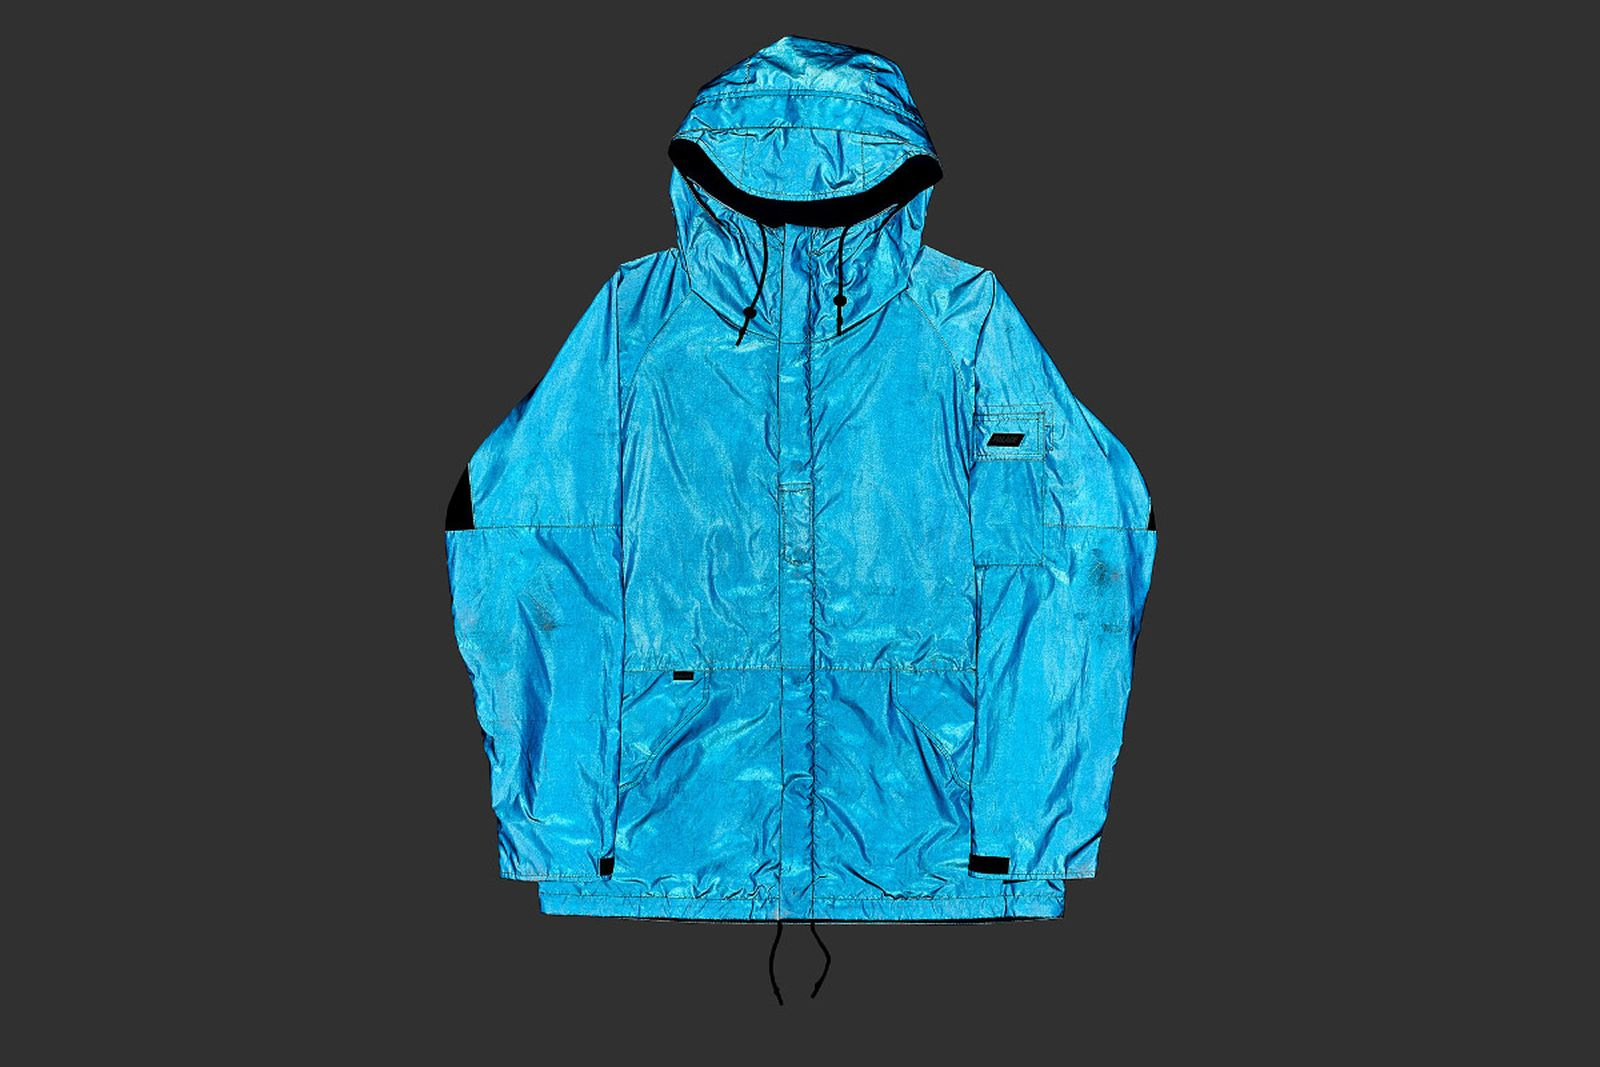 Palace 2019 Autumn Jacket Deflector blue reflective front fw19